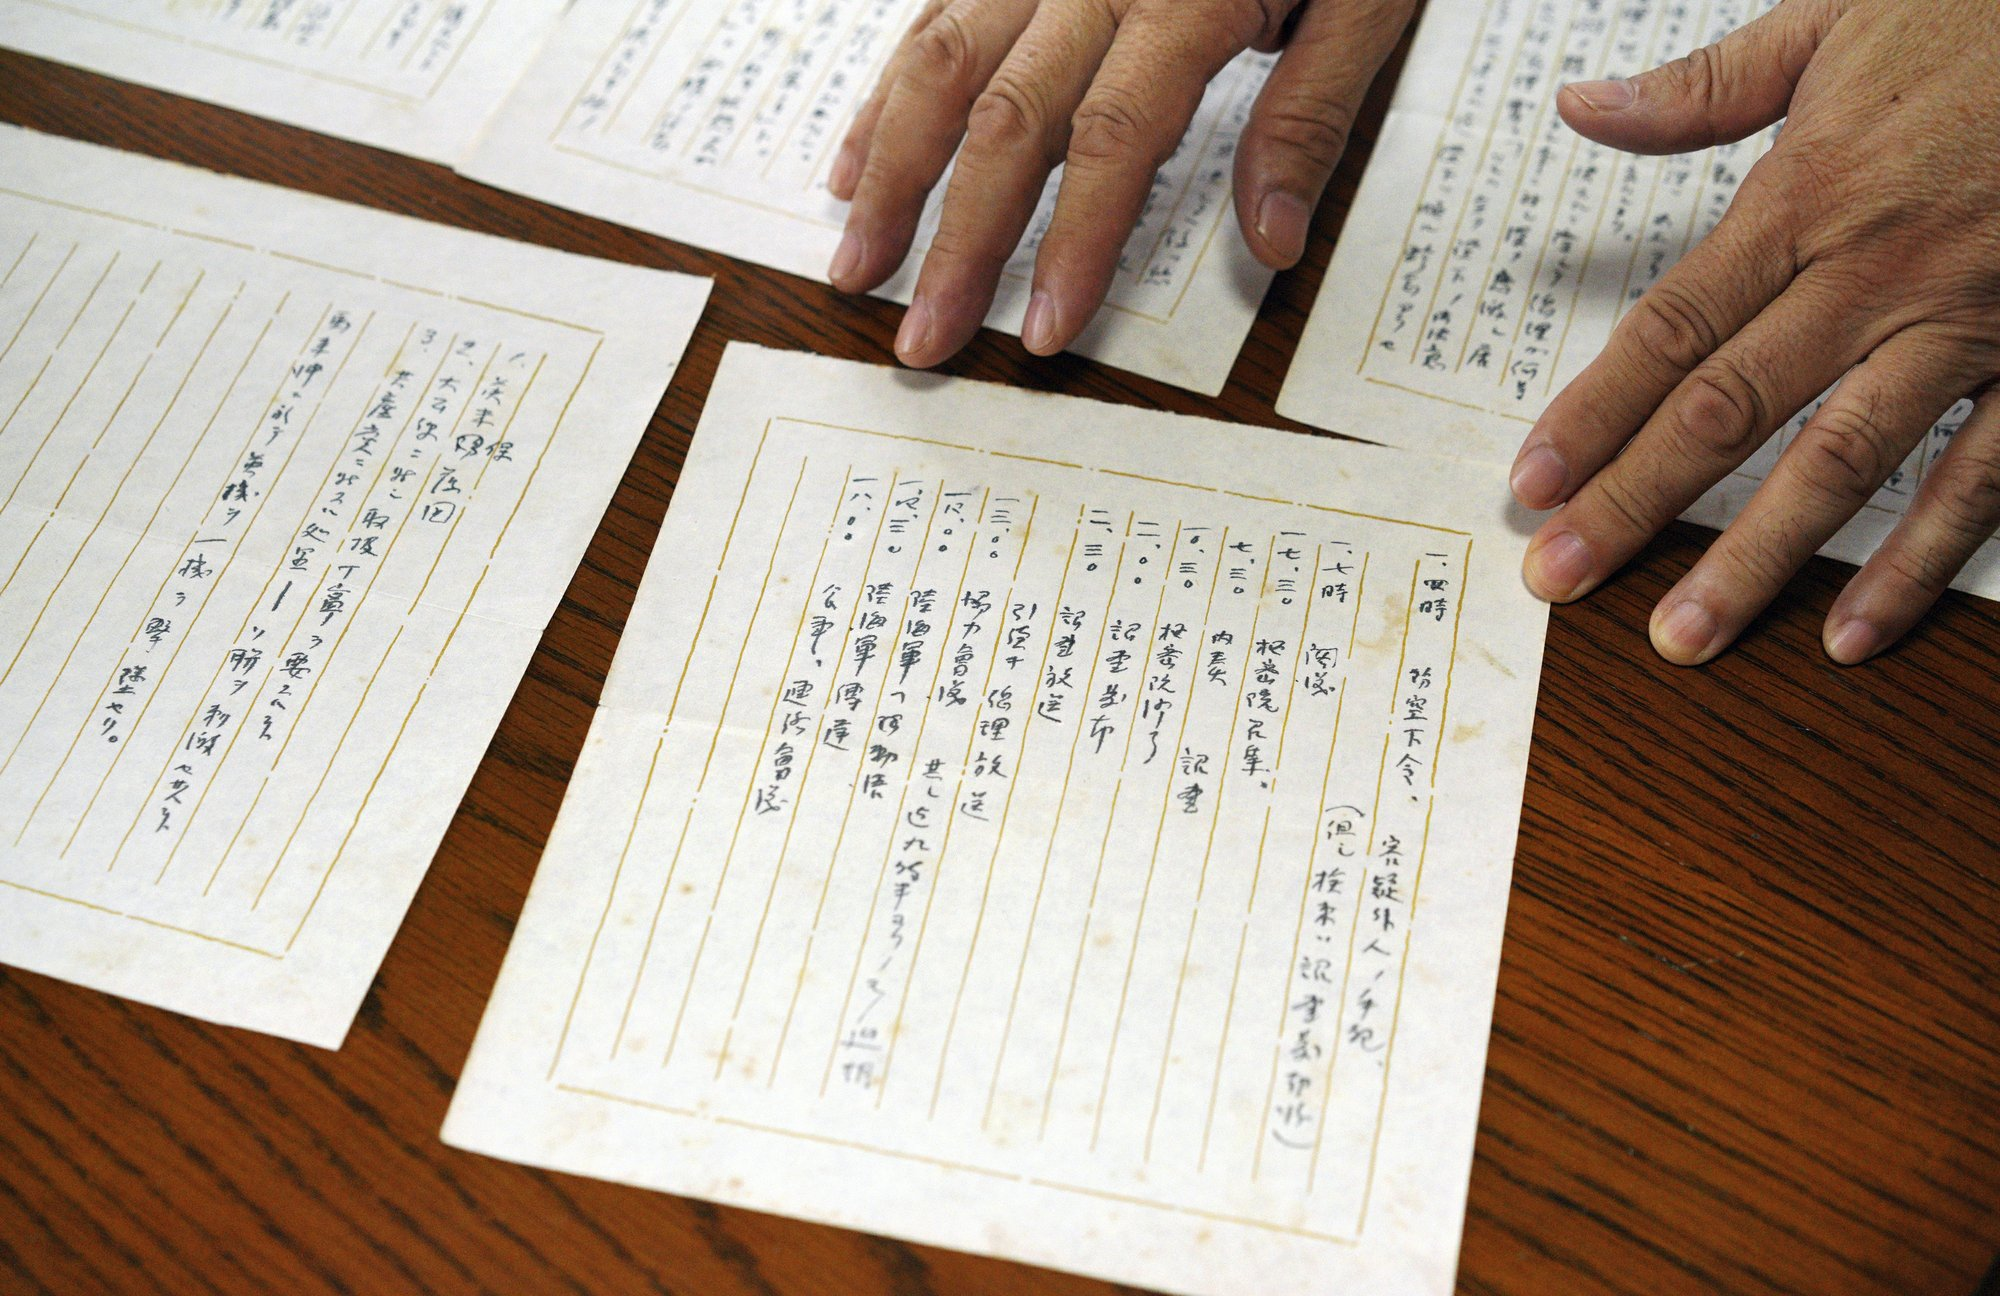 Released memo points to Hirohito's role in Pearl Harbor raid